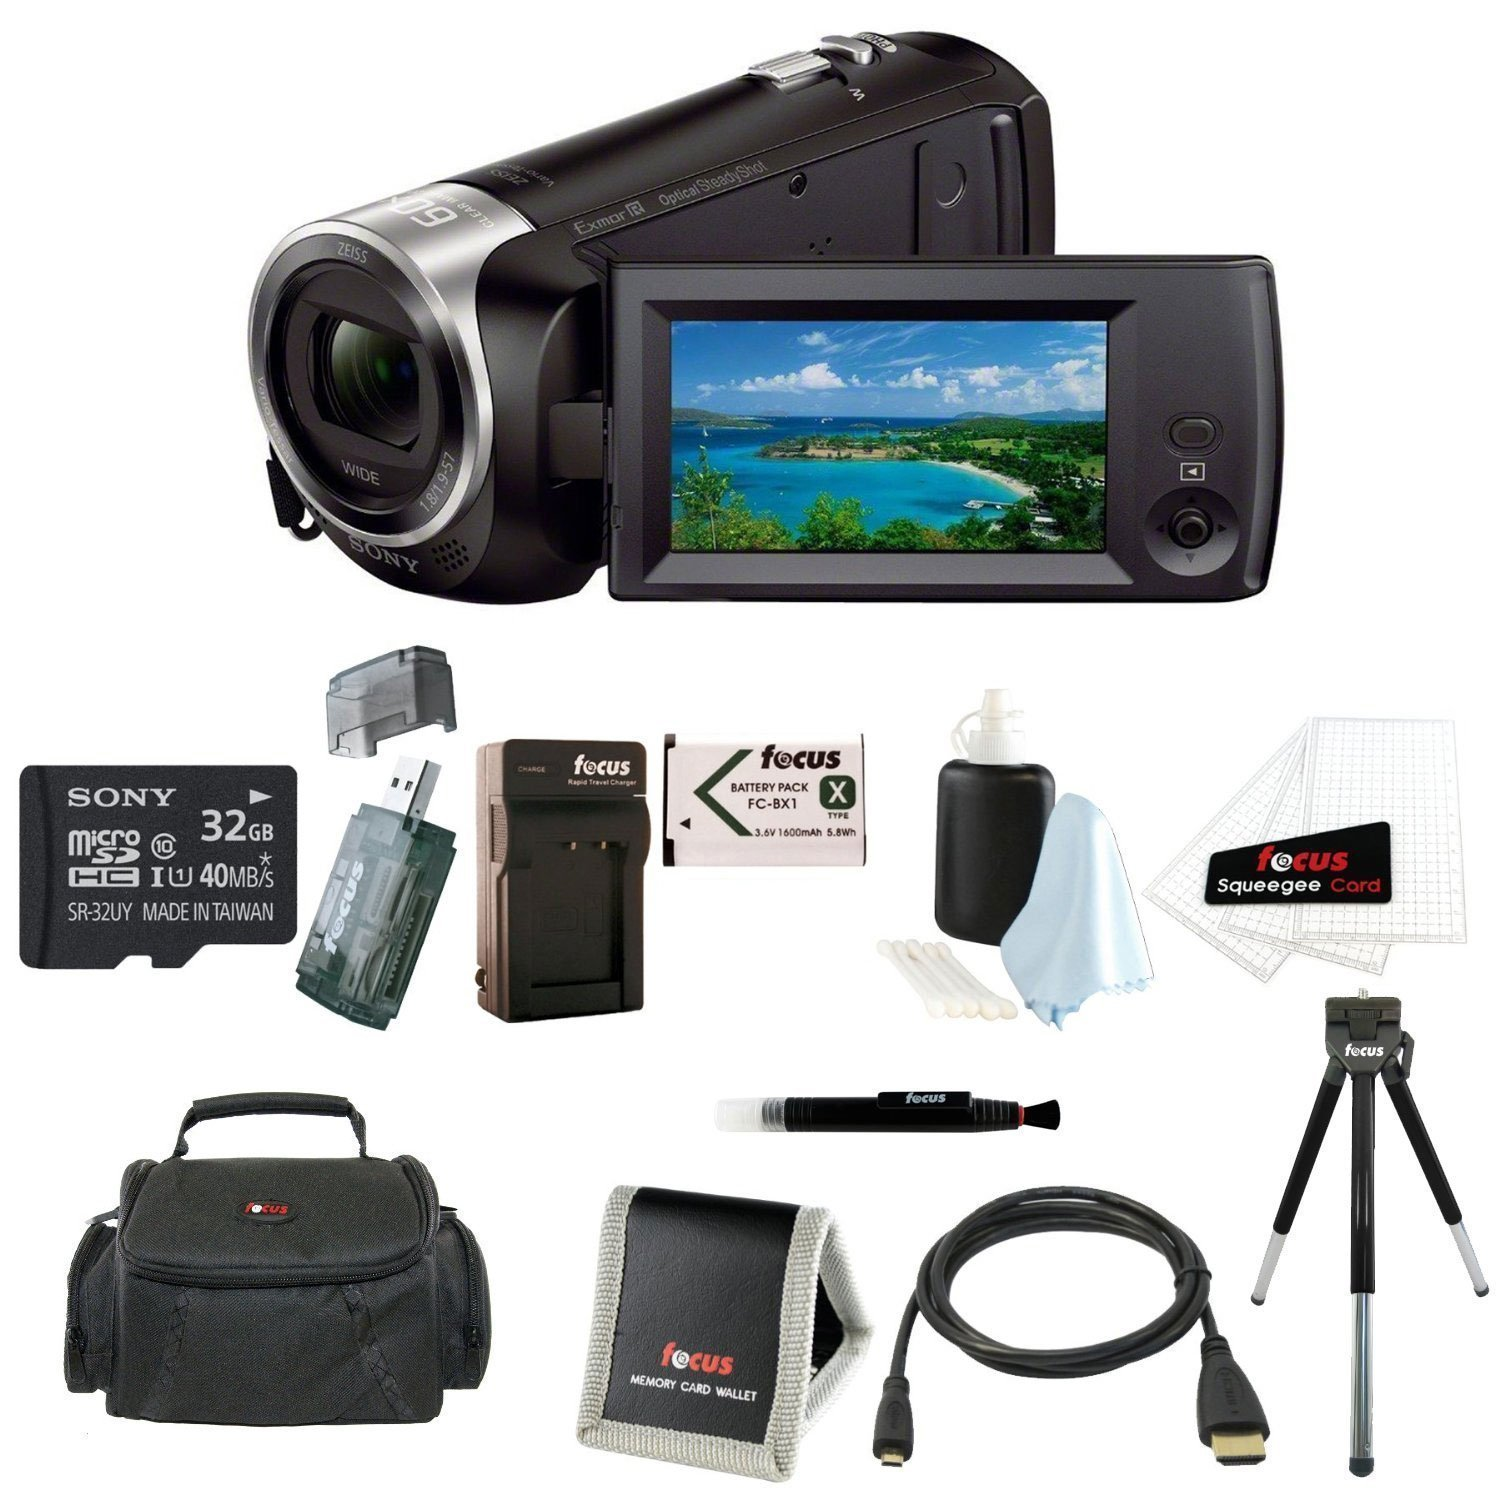 Sony HDR-CX405 Handycam Camcorder + 32GB microSDHC card + 8-Inch Table Tripod + Accessory Bundle